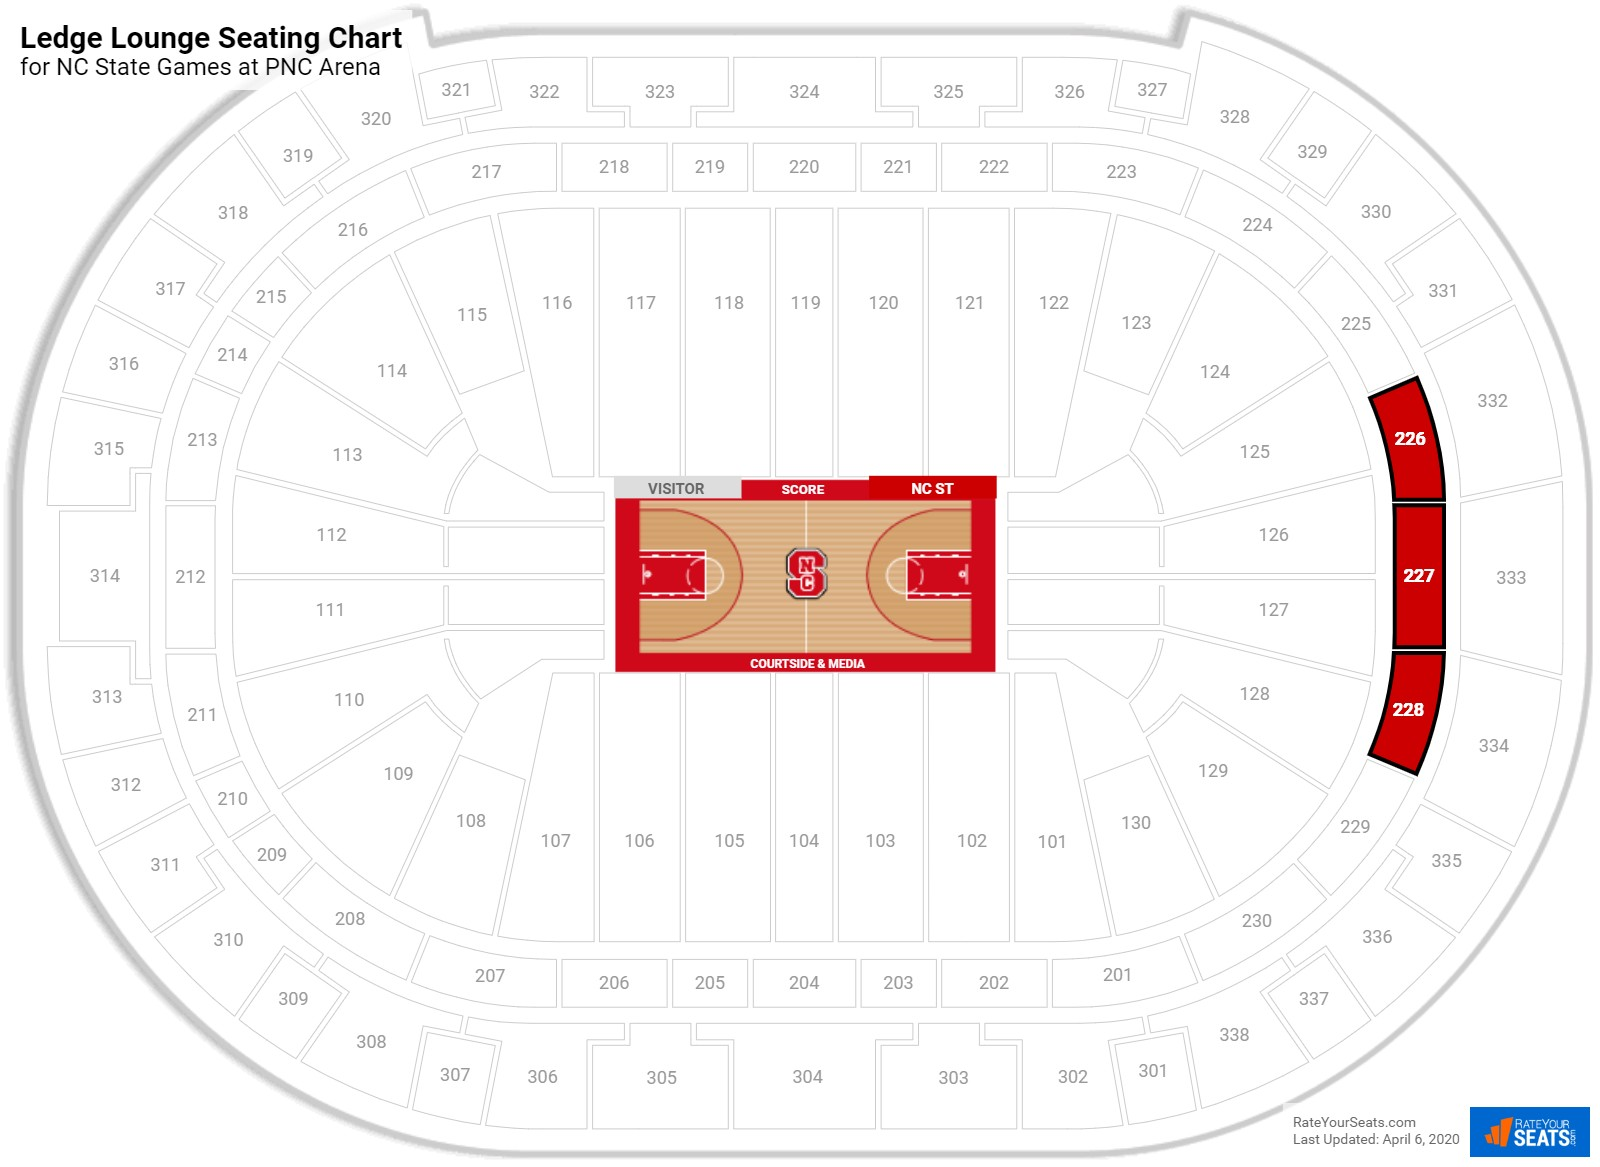 PNC Arena Ledge Lounge seating chart